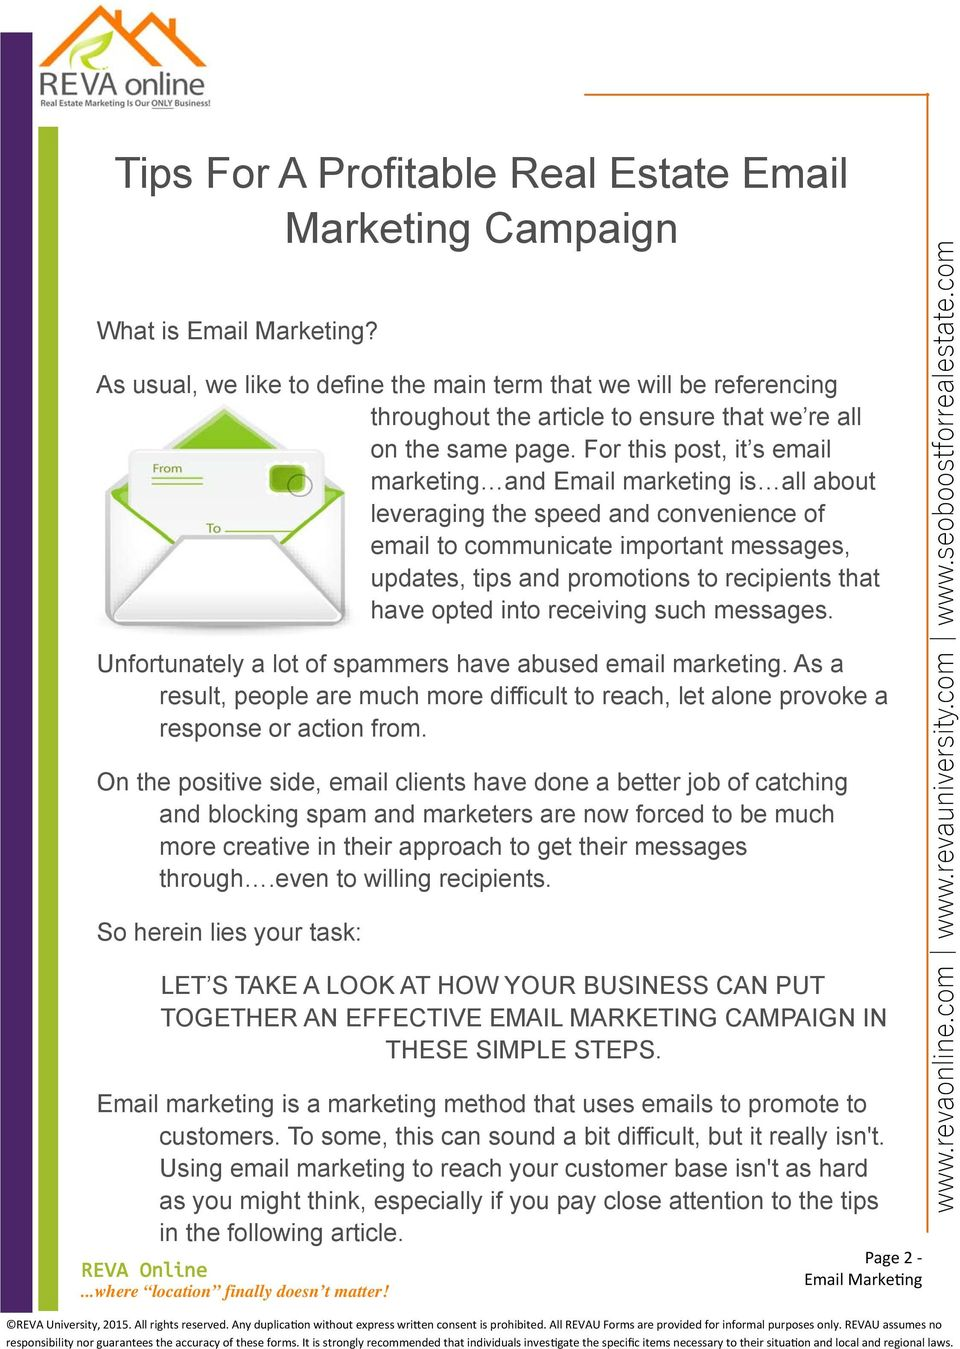 For this post, it s email marketing and Email marketing is all about leveraging the speed and convenience of email to communicate important messages, updates, tips and promotions to recipients that